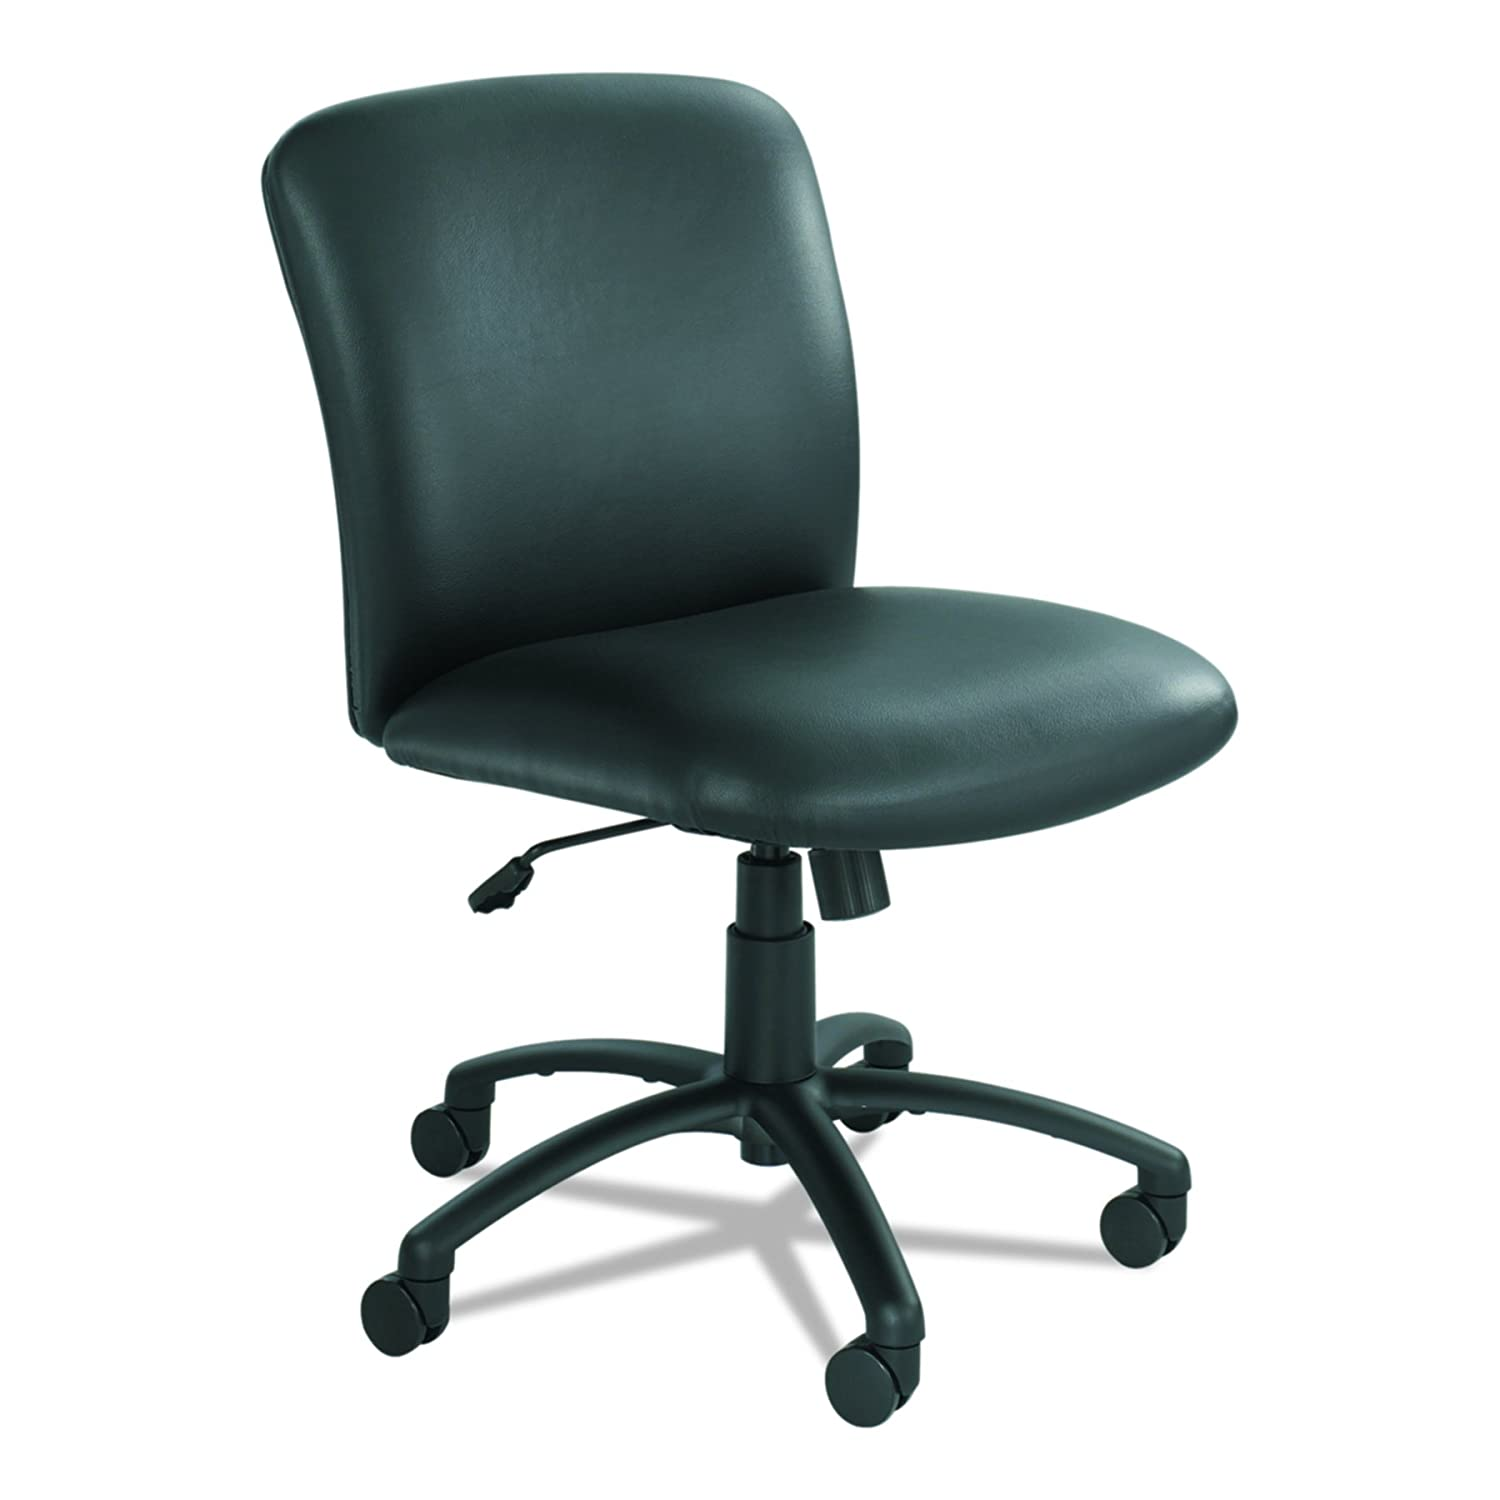 Safco Products Uber Big and Tall Mid Back Chair , Black Vinyl, Rated for 24/7 Use, Holds up to 500 lbs. (Optional arms sold separately)